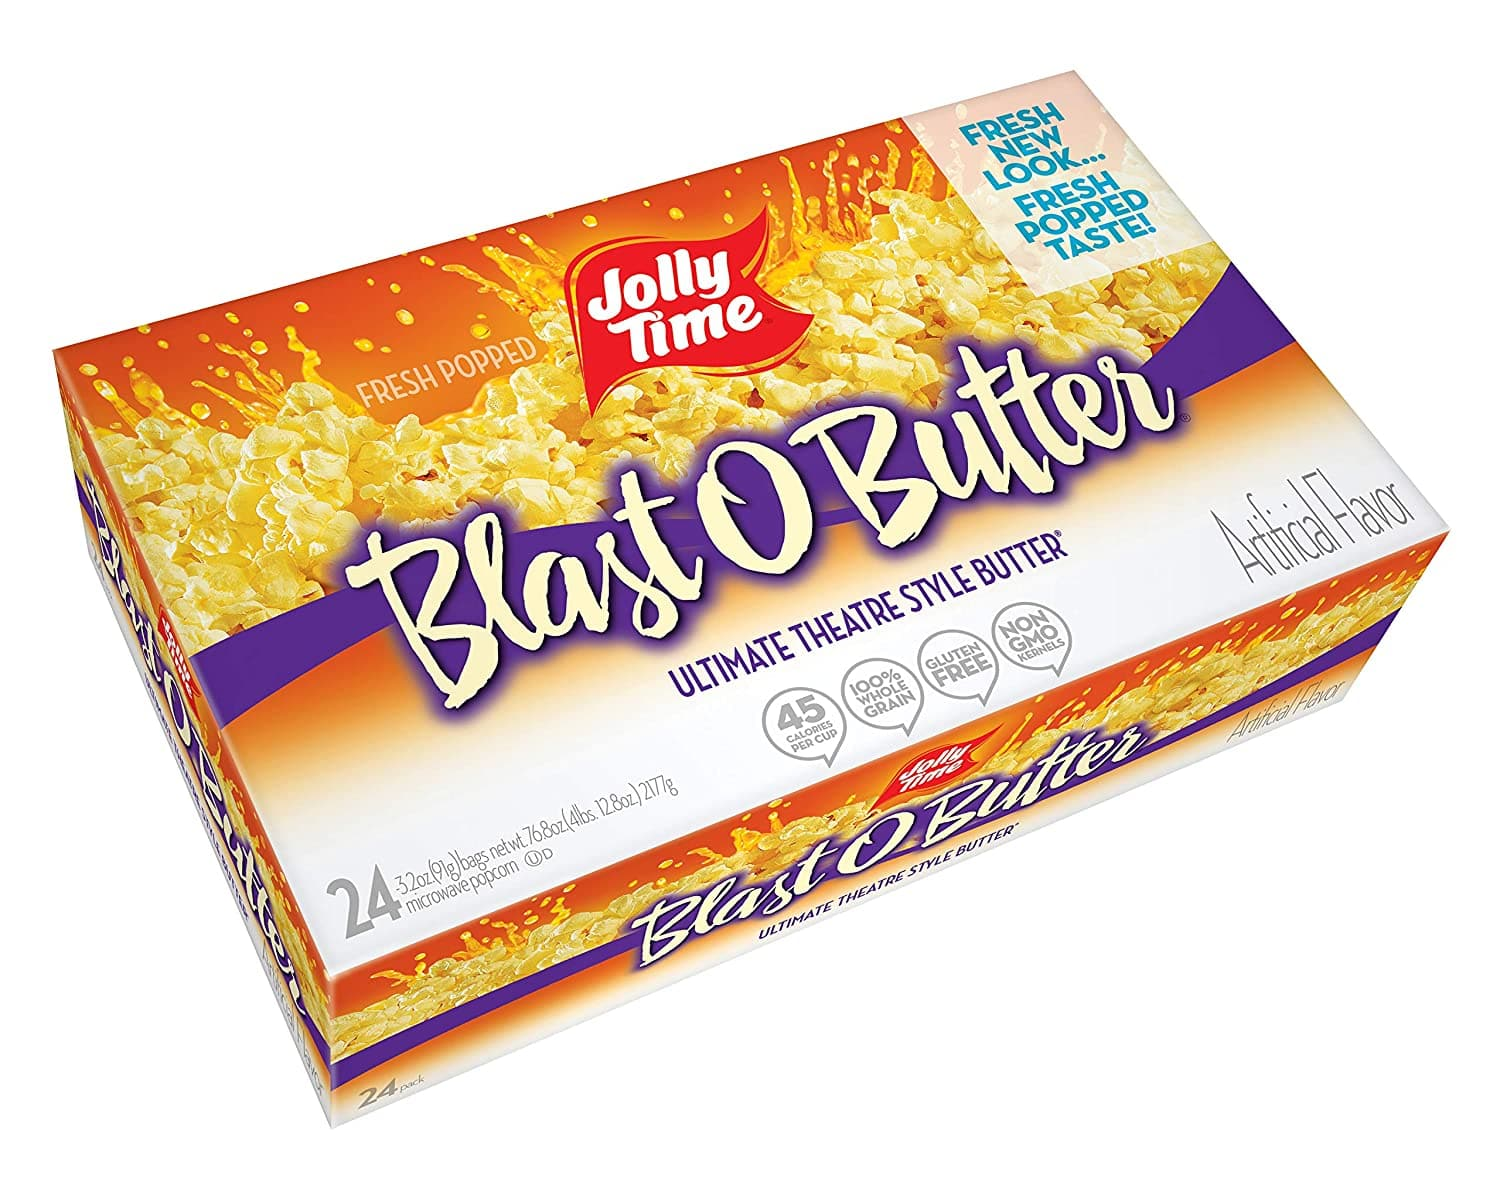 JOLLY TIME Blast O Butter Movie Theater Style Microwave Popcorn with Extra Buttery Flavor, Palm Oil, Salt and Non GMO Kernels ,3.2 Oz,Pack of 24 as low as $5.92 with FS $6.96